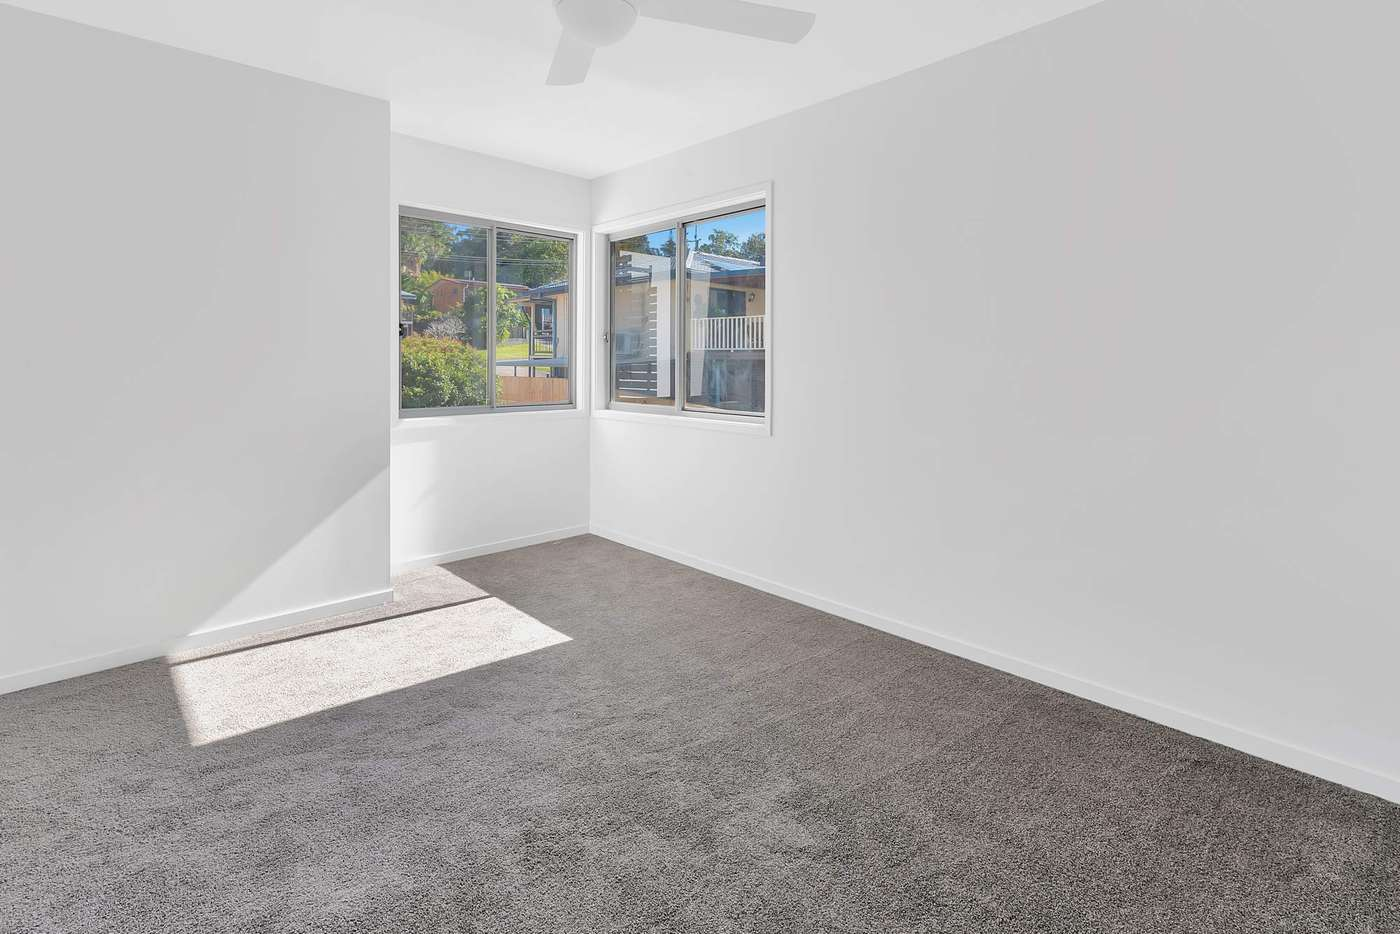 Seventh view of Homely house listing, 2/40 REGENCY PLACE, Mudgeeraba QLD 4213